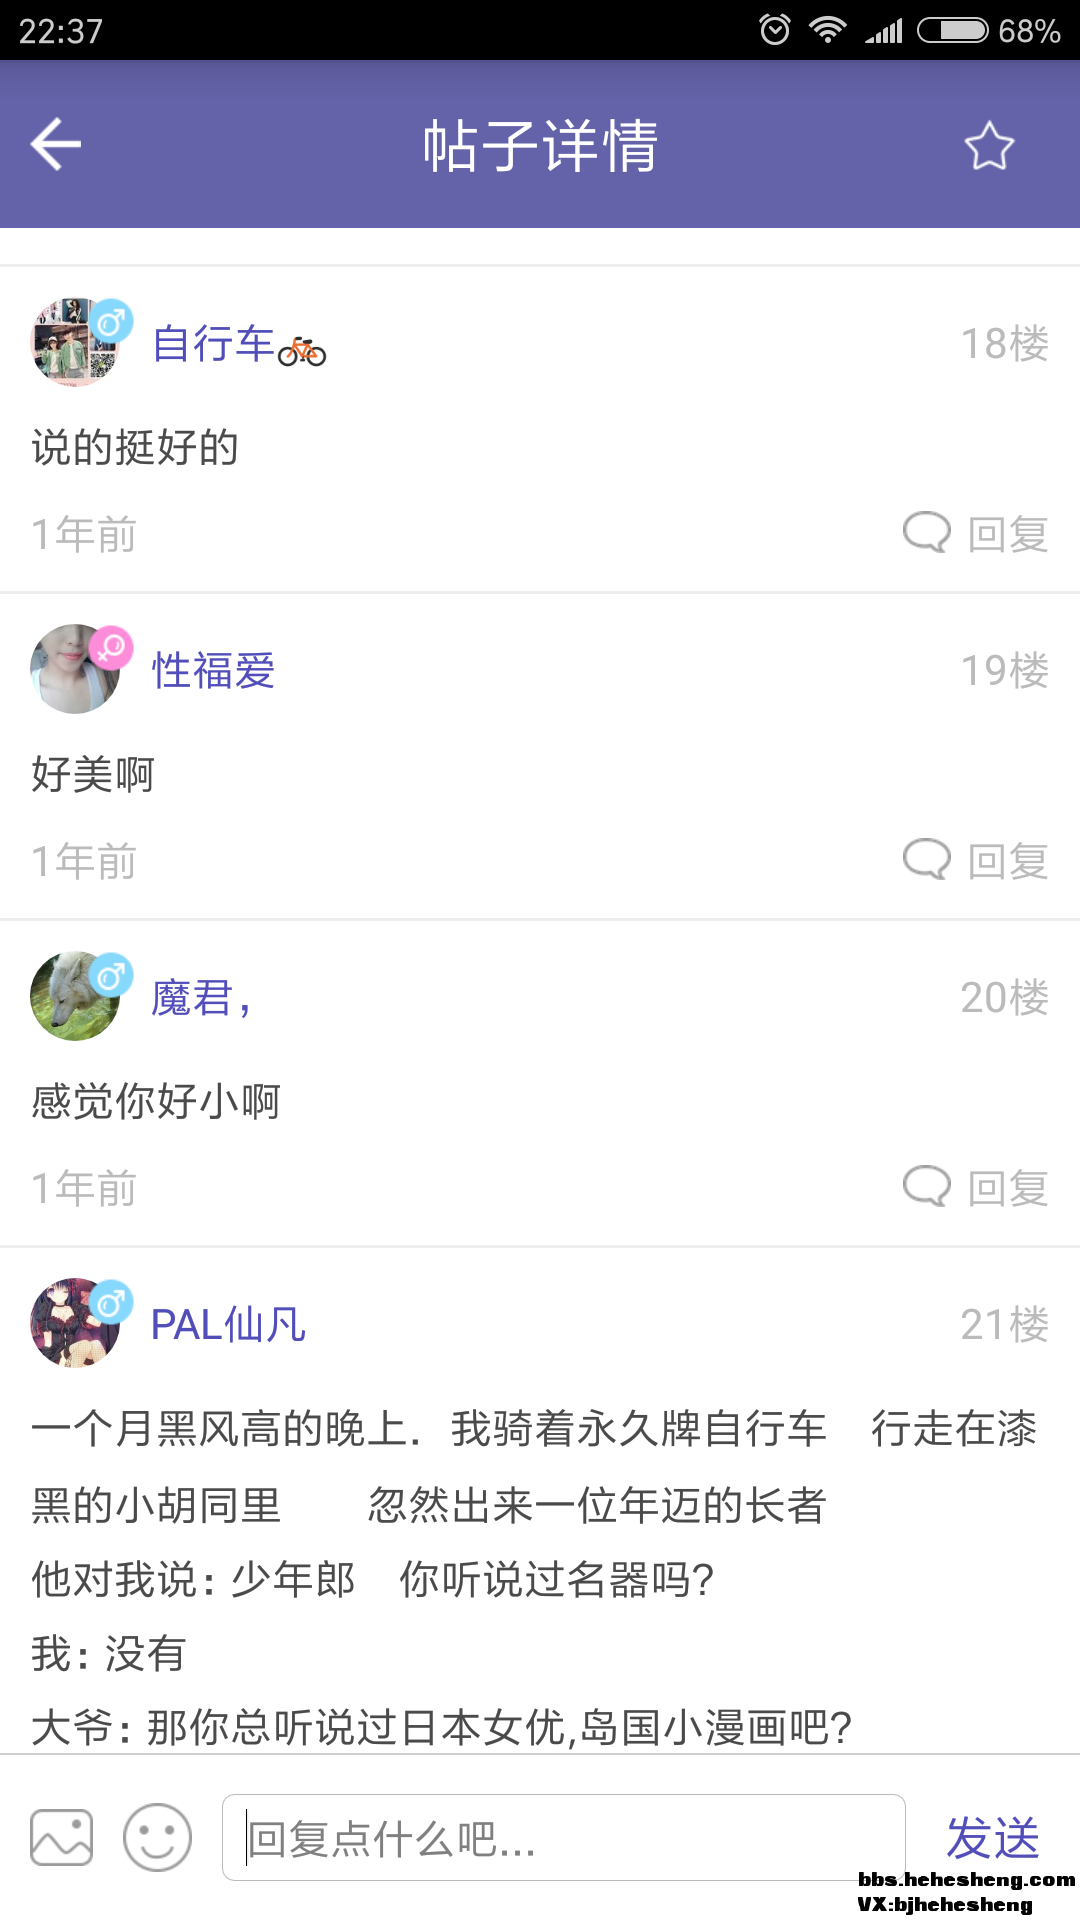 Screenshot_2018-01-19-22-37-10-936_com.mengxia.lo.png